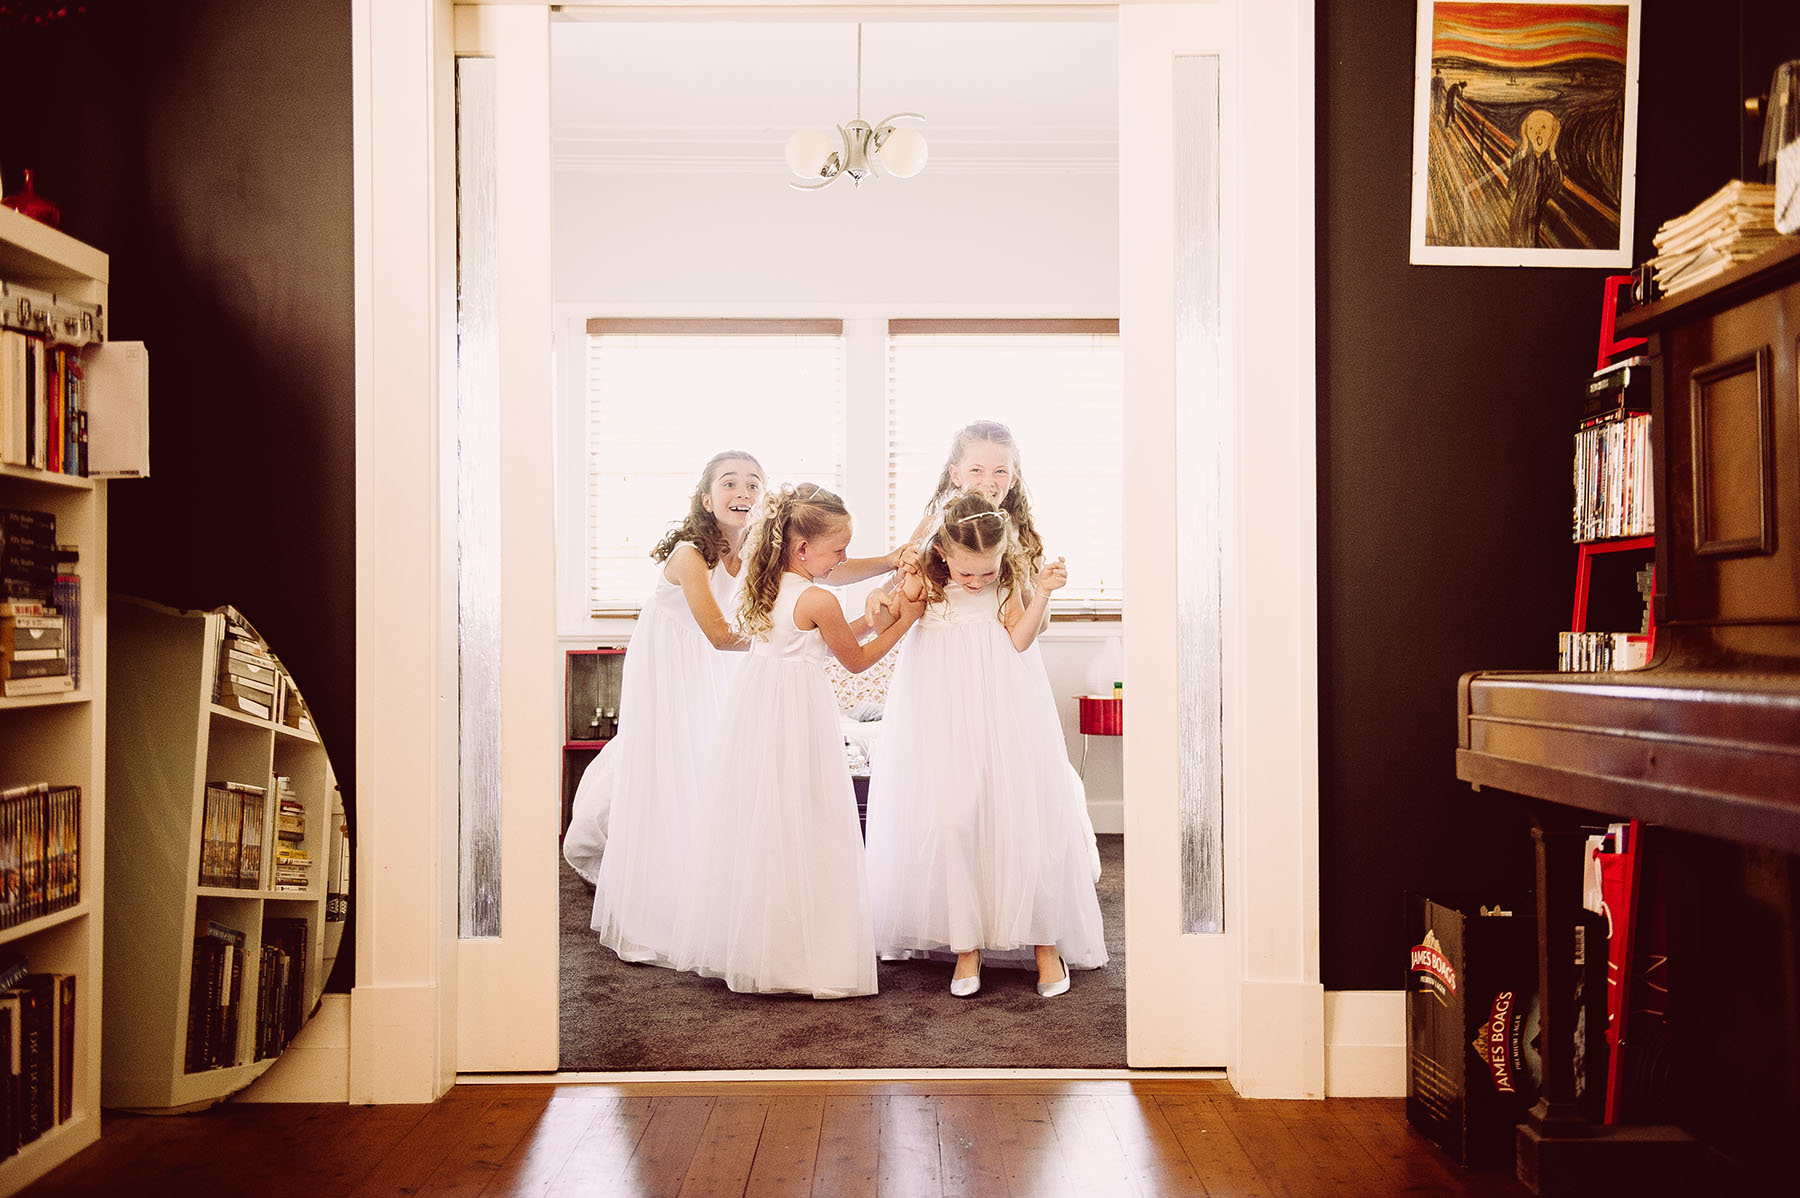 Marryme_wedding_photography_dorrigo_bellingen_photographer_56.jpg